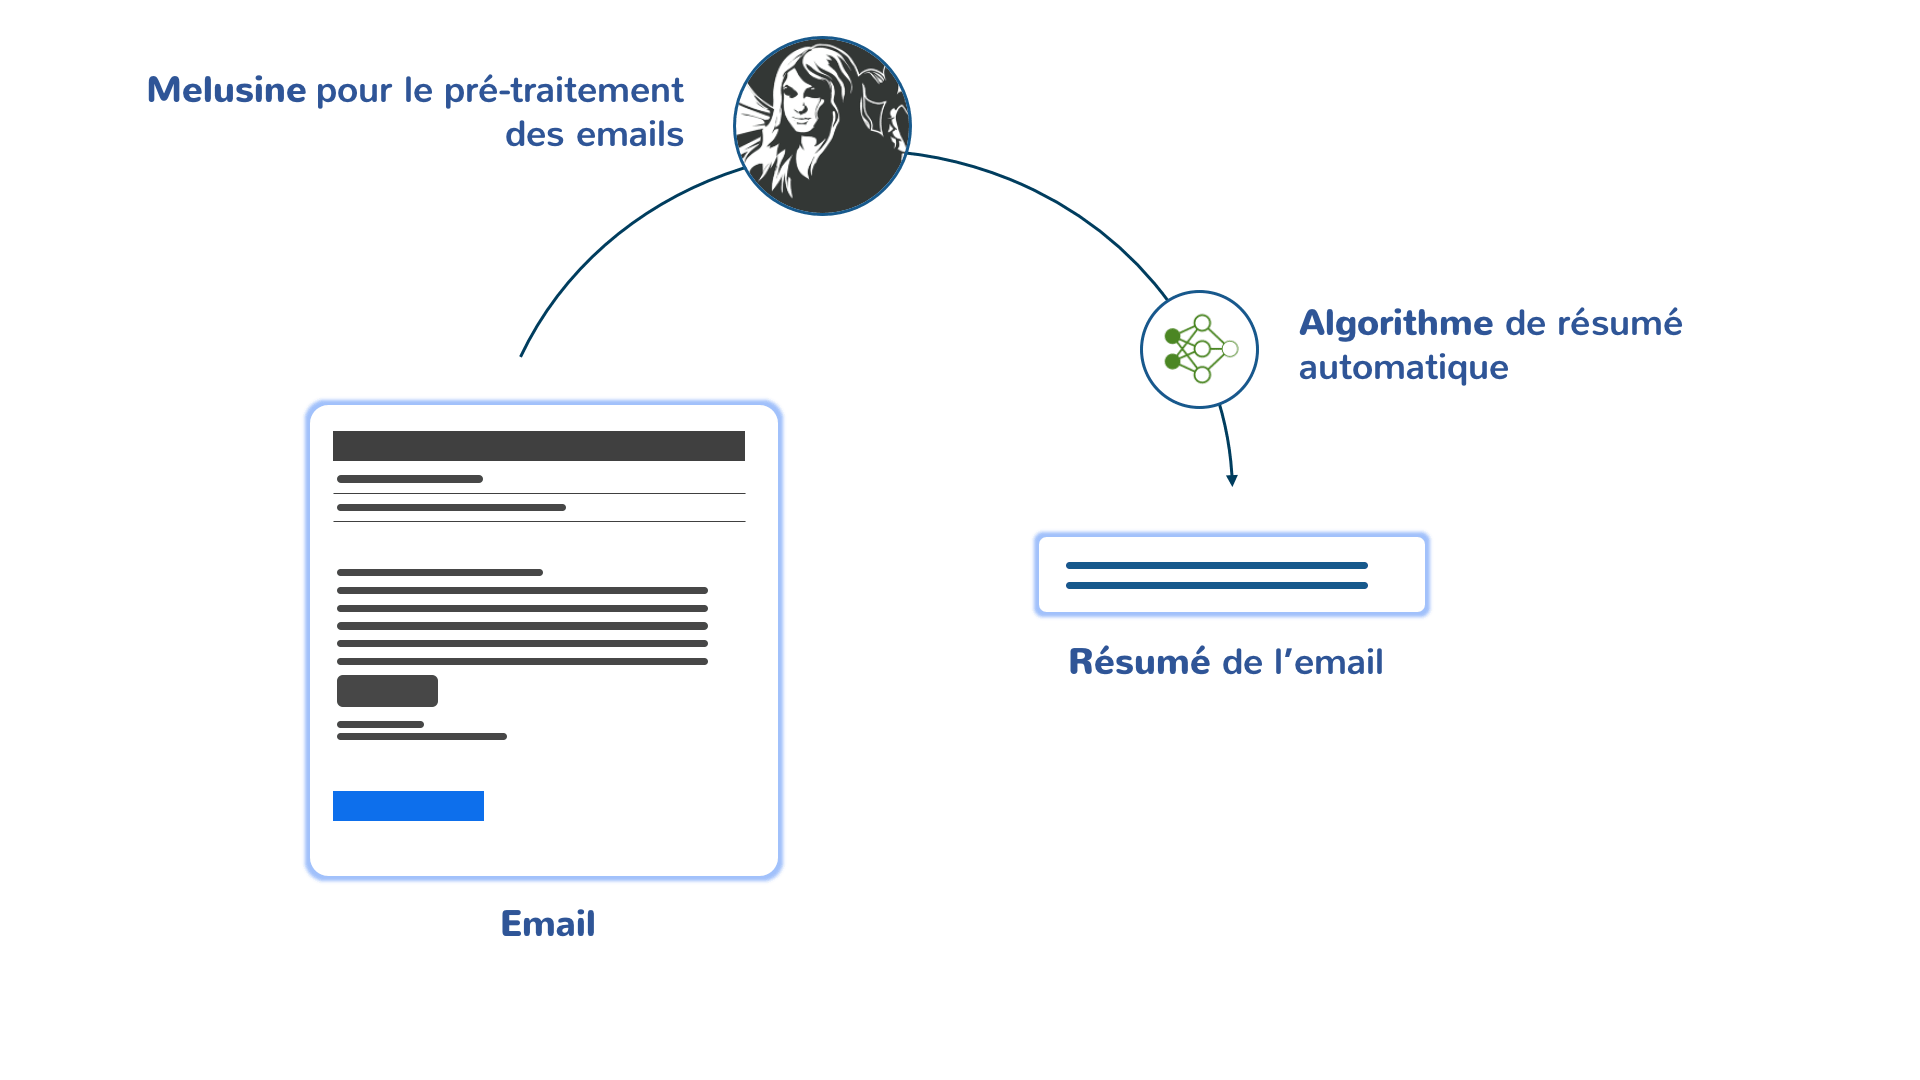 Traitement automatique des emails - Quantmetry